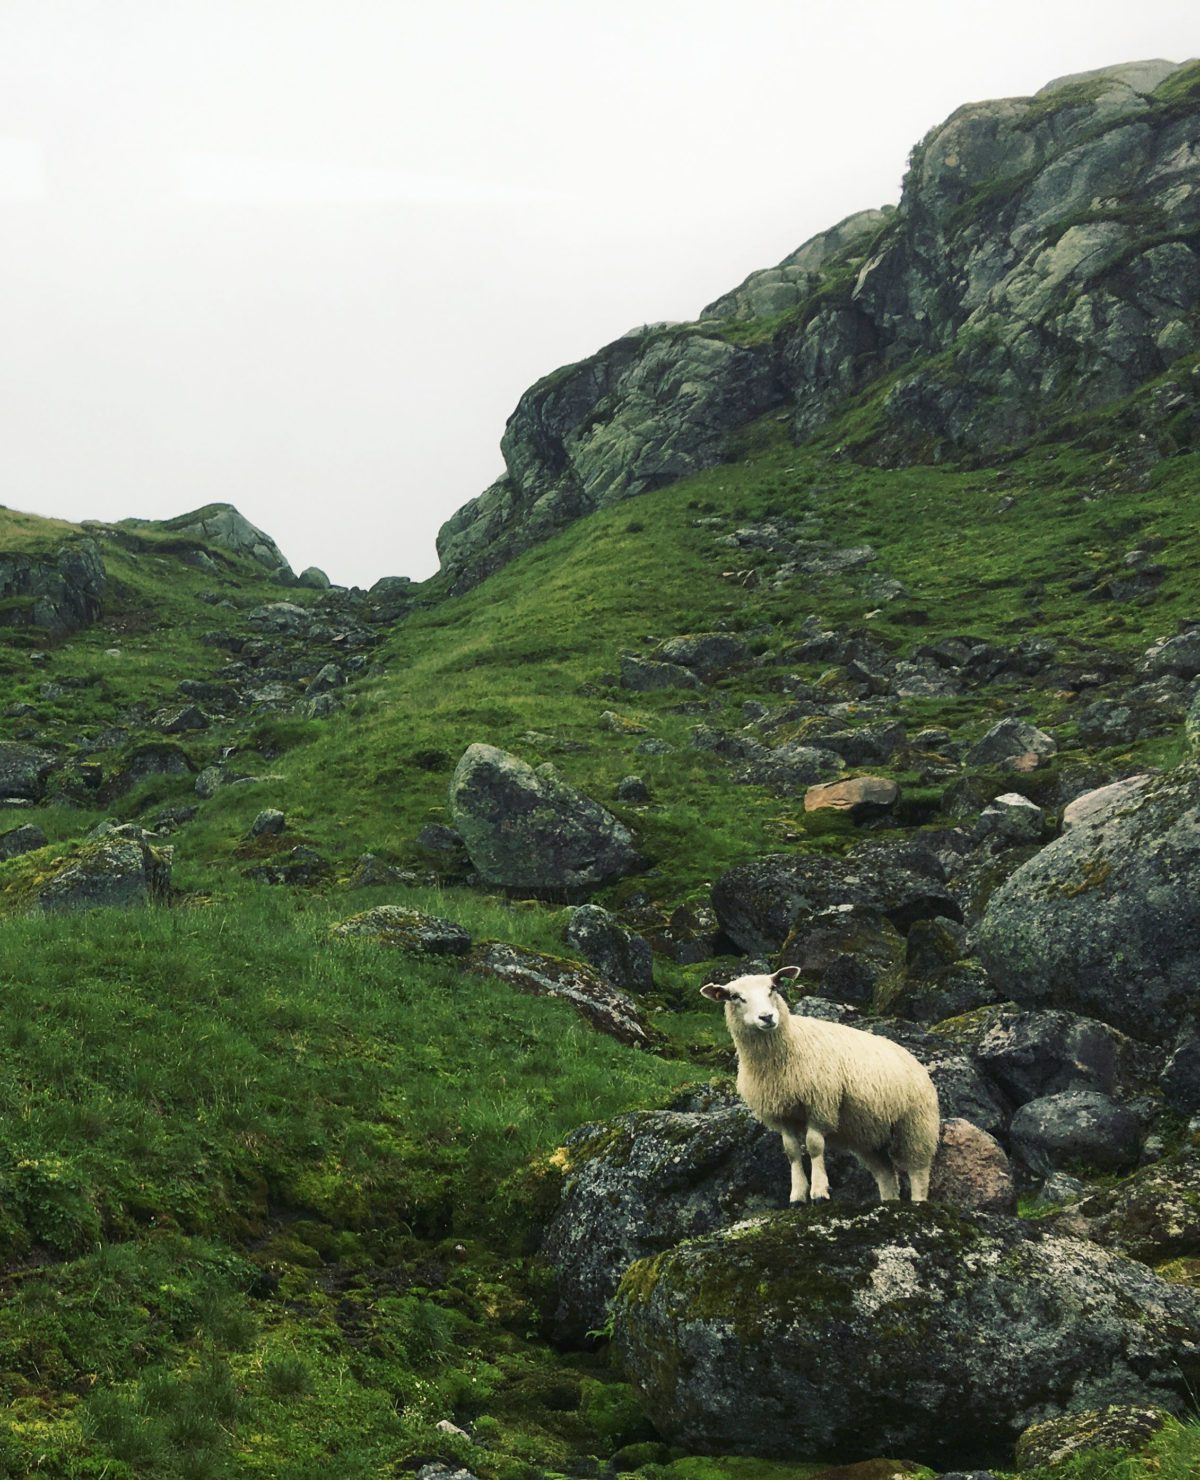 A sheep in the mountains.